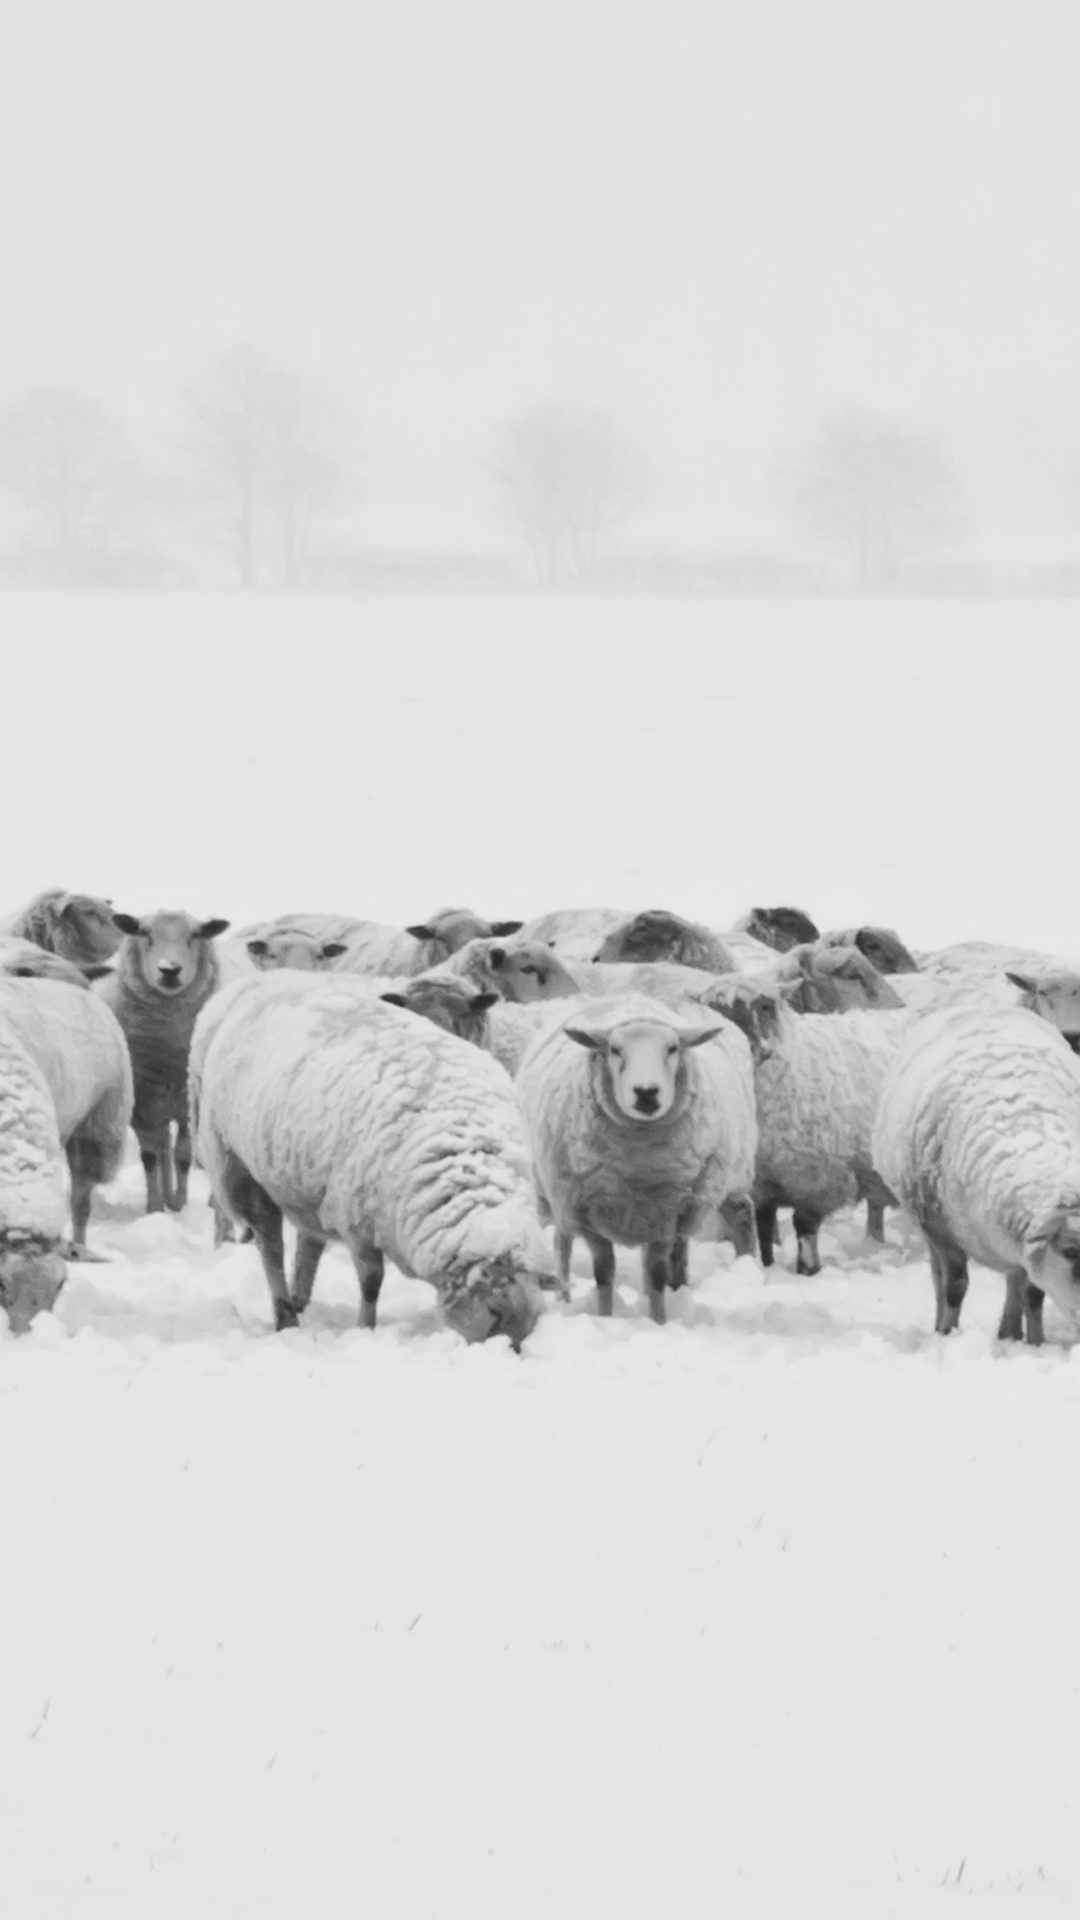 Winter Sheep 1080 X 1920 FHD Wallpaper